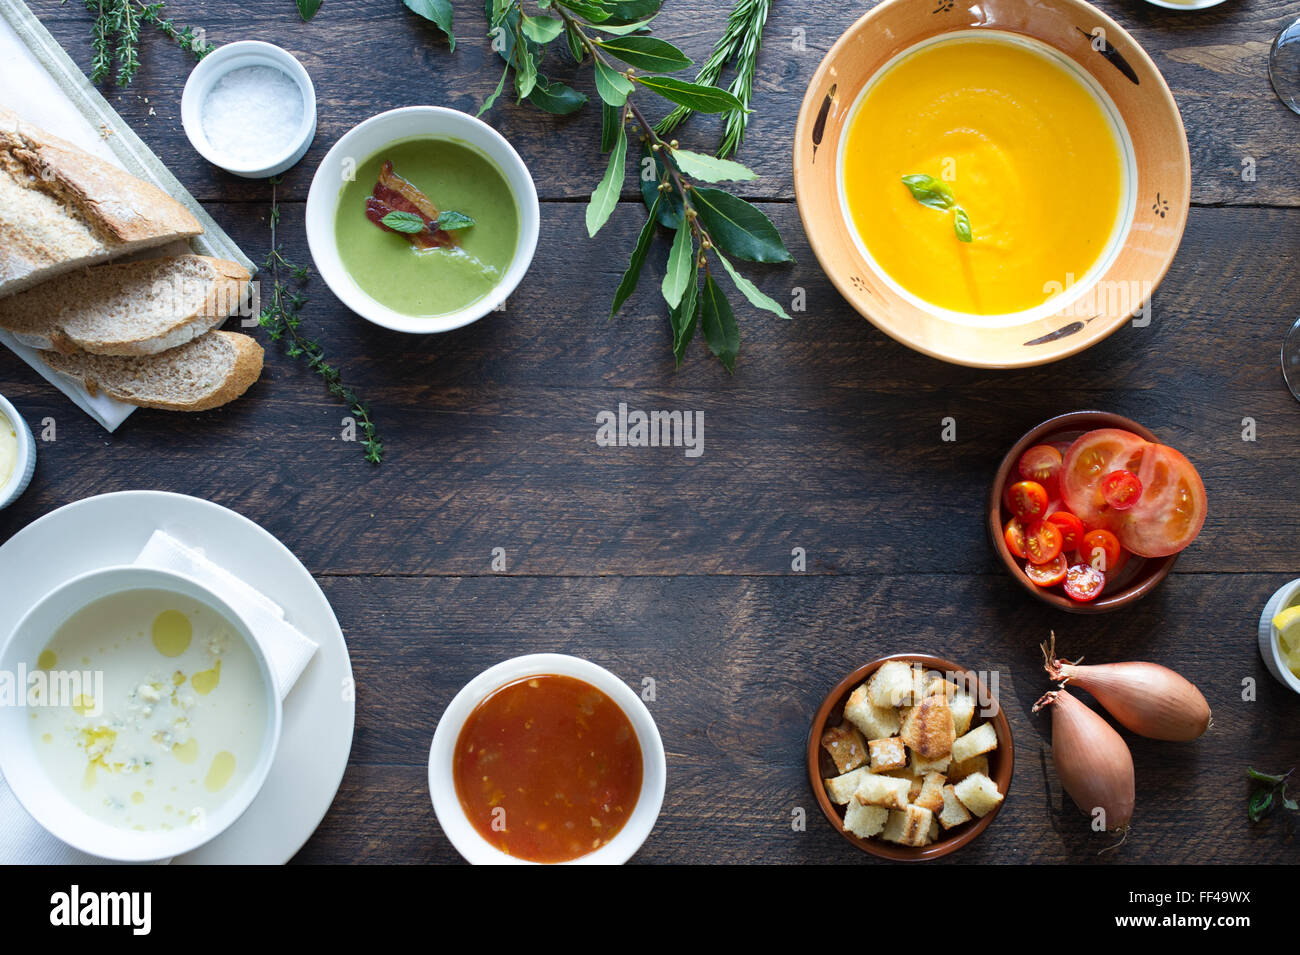 Tabletop food from above with space for copy - Stock Image